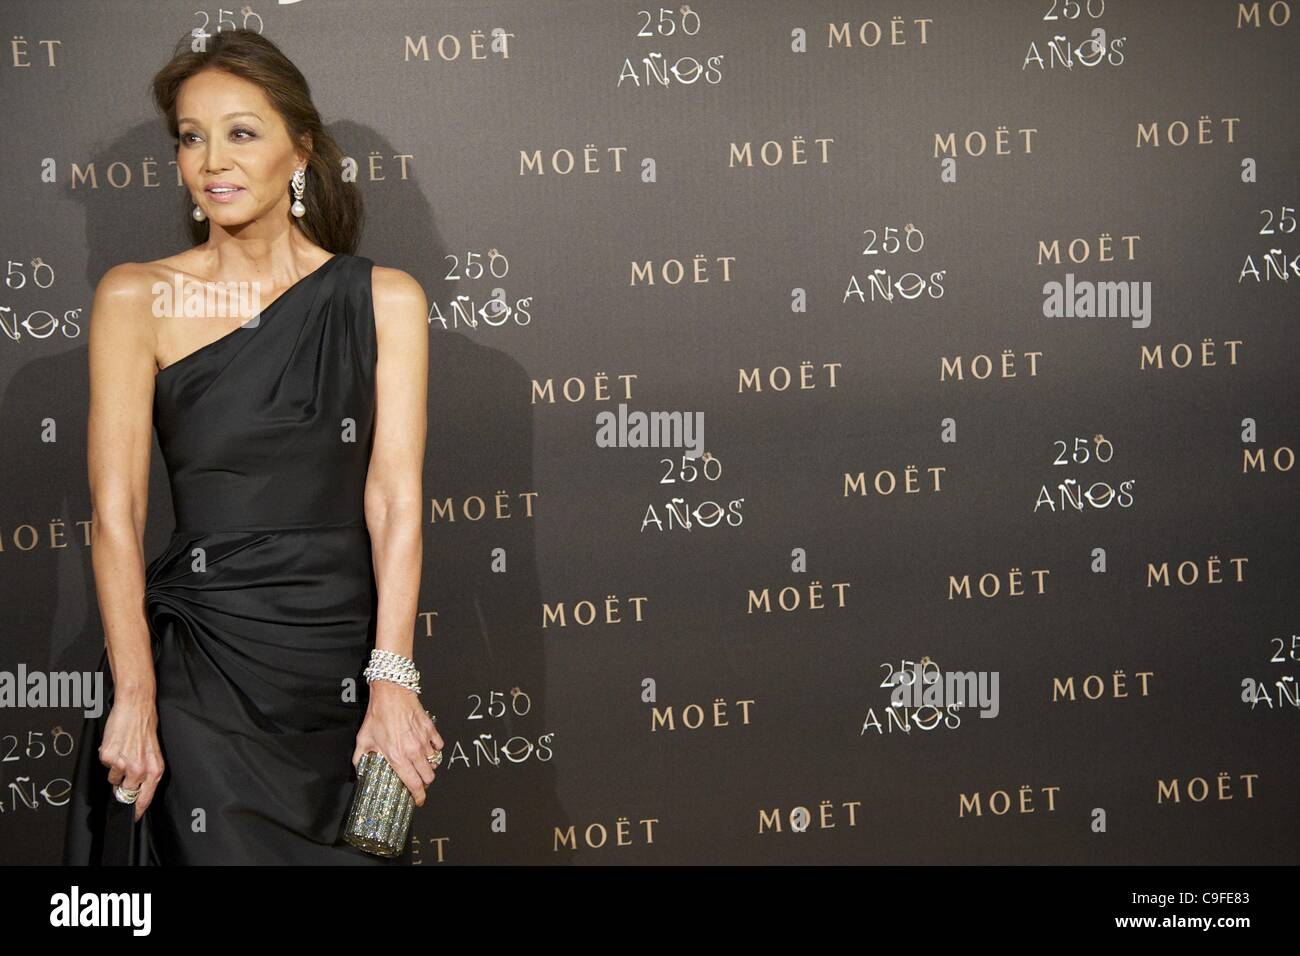 Dec. 14, 2011 - Madrid, Madrid, Spain - Isabel Preysler attends the photocall for the 250th Anniversary of Moet - Stock Image